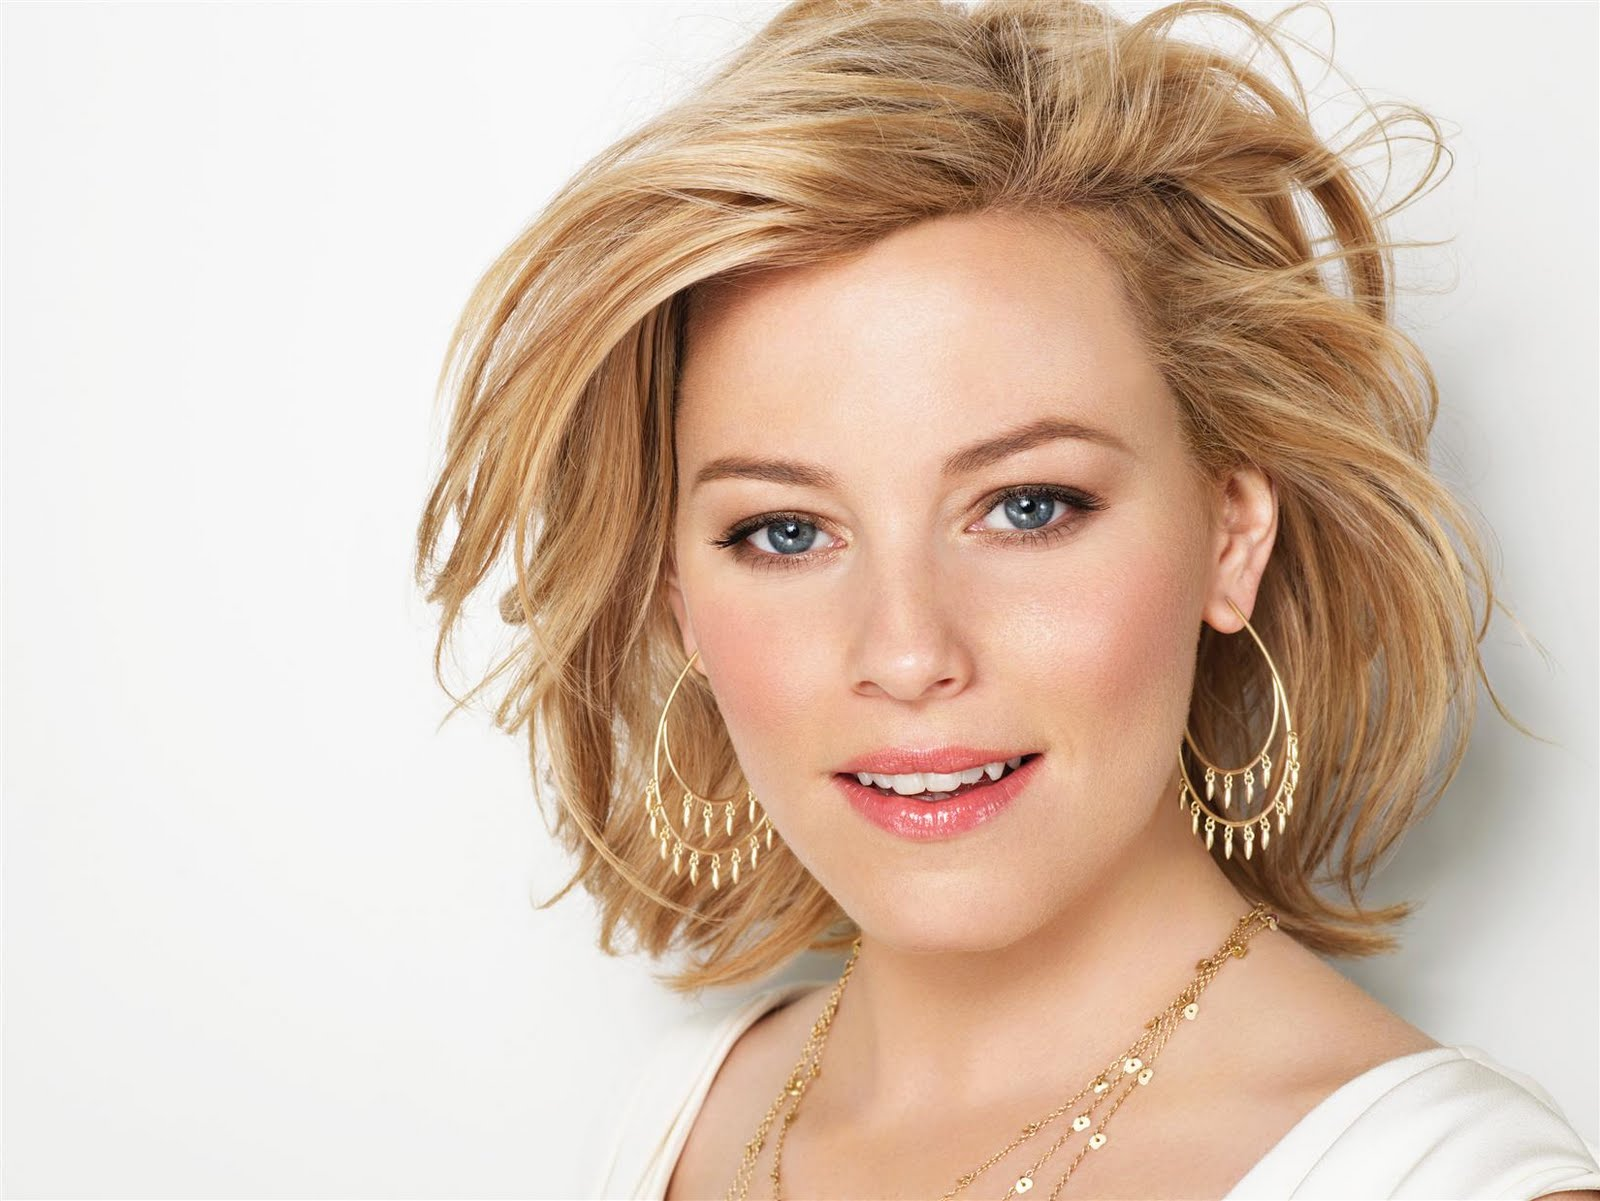 Elizabeth Banks photoshoot 3 Elizabeth Banks Fakes